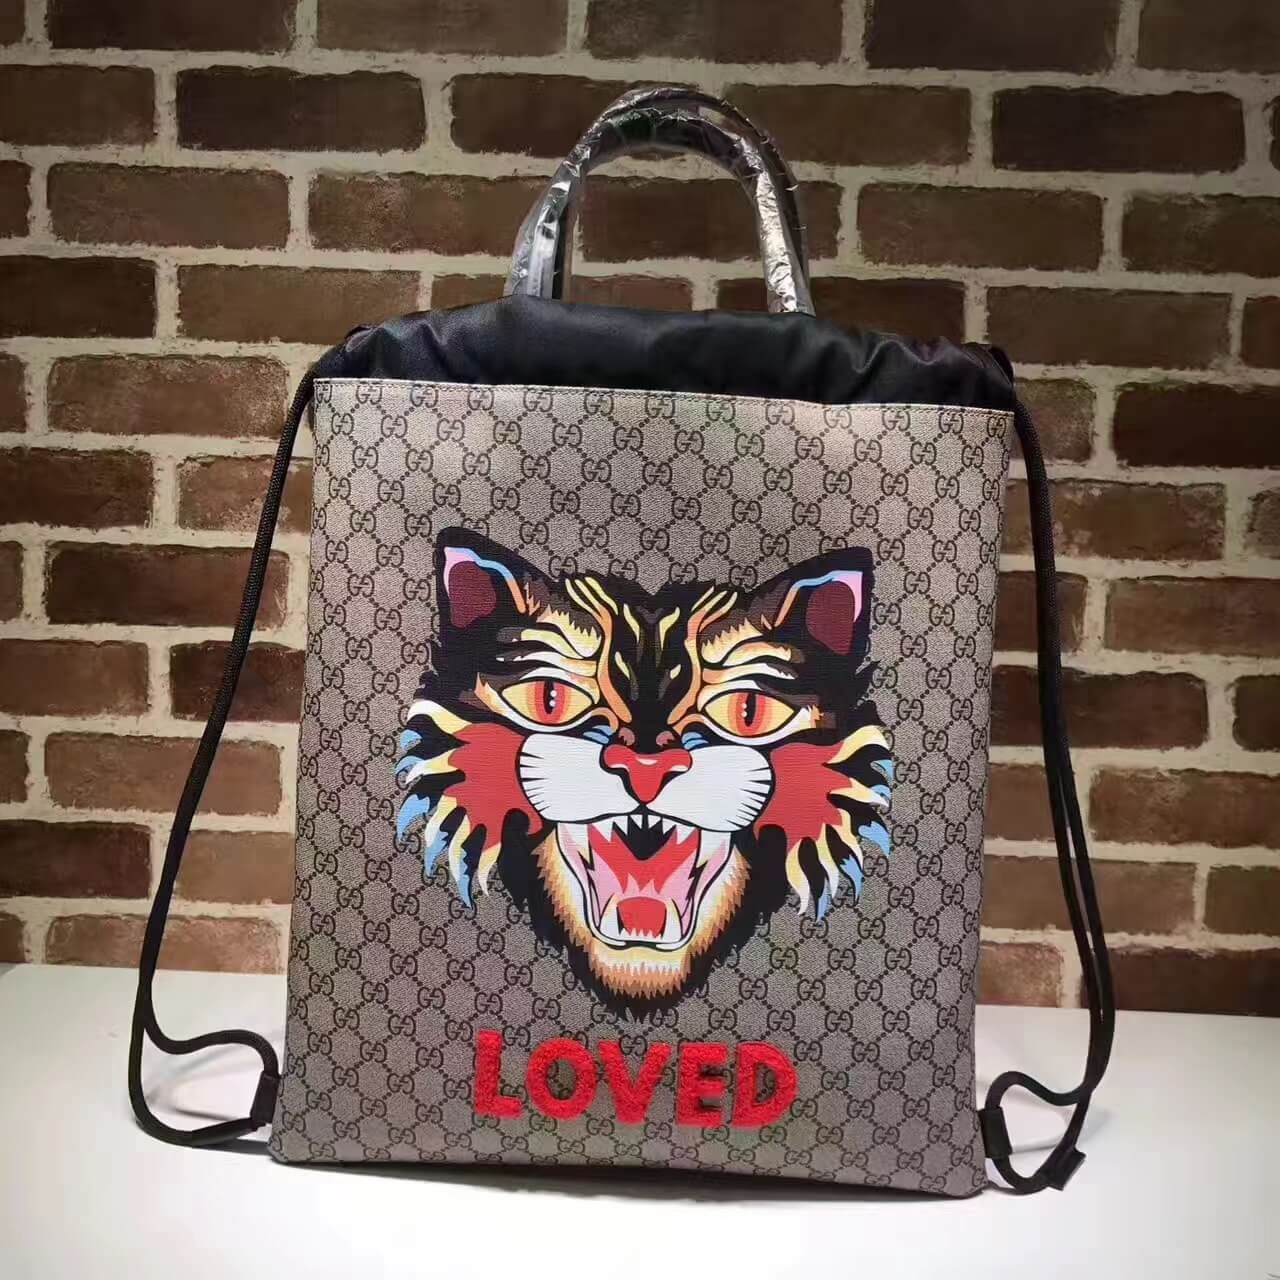 203b498def8 Gucci Angry Cat Print Soft GG Supreme Drawstring Backpack 473872 2017